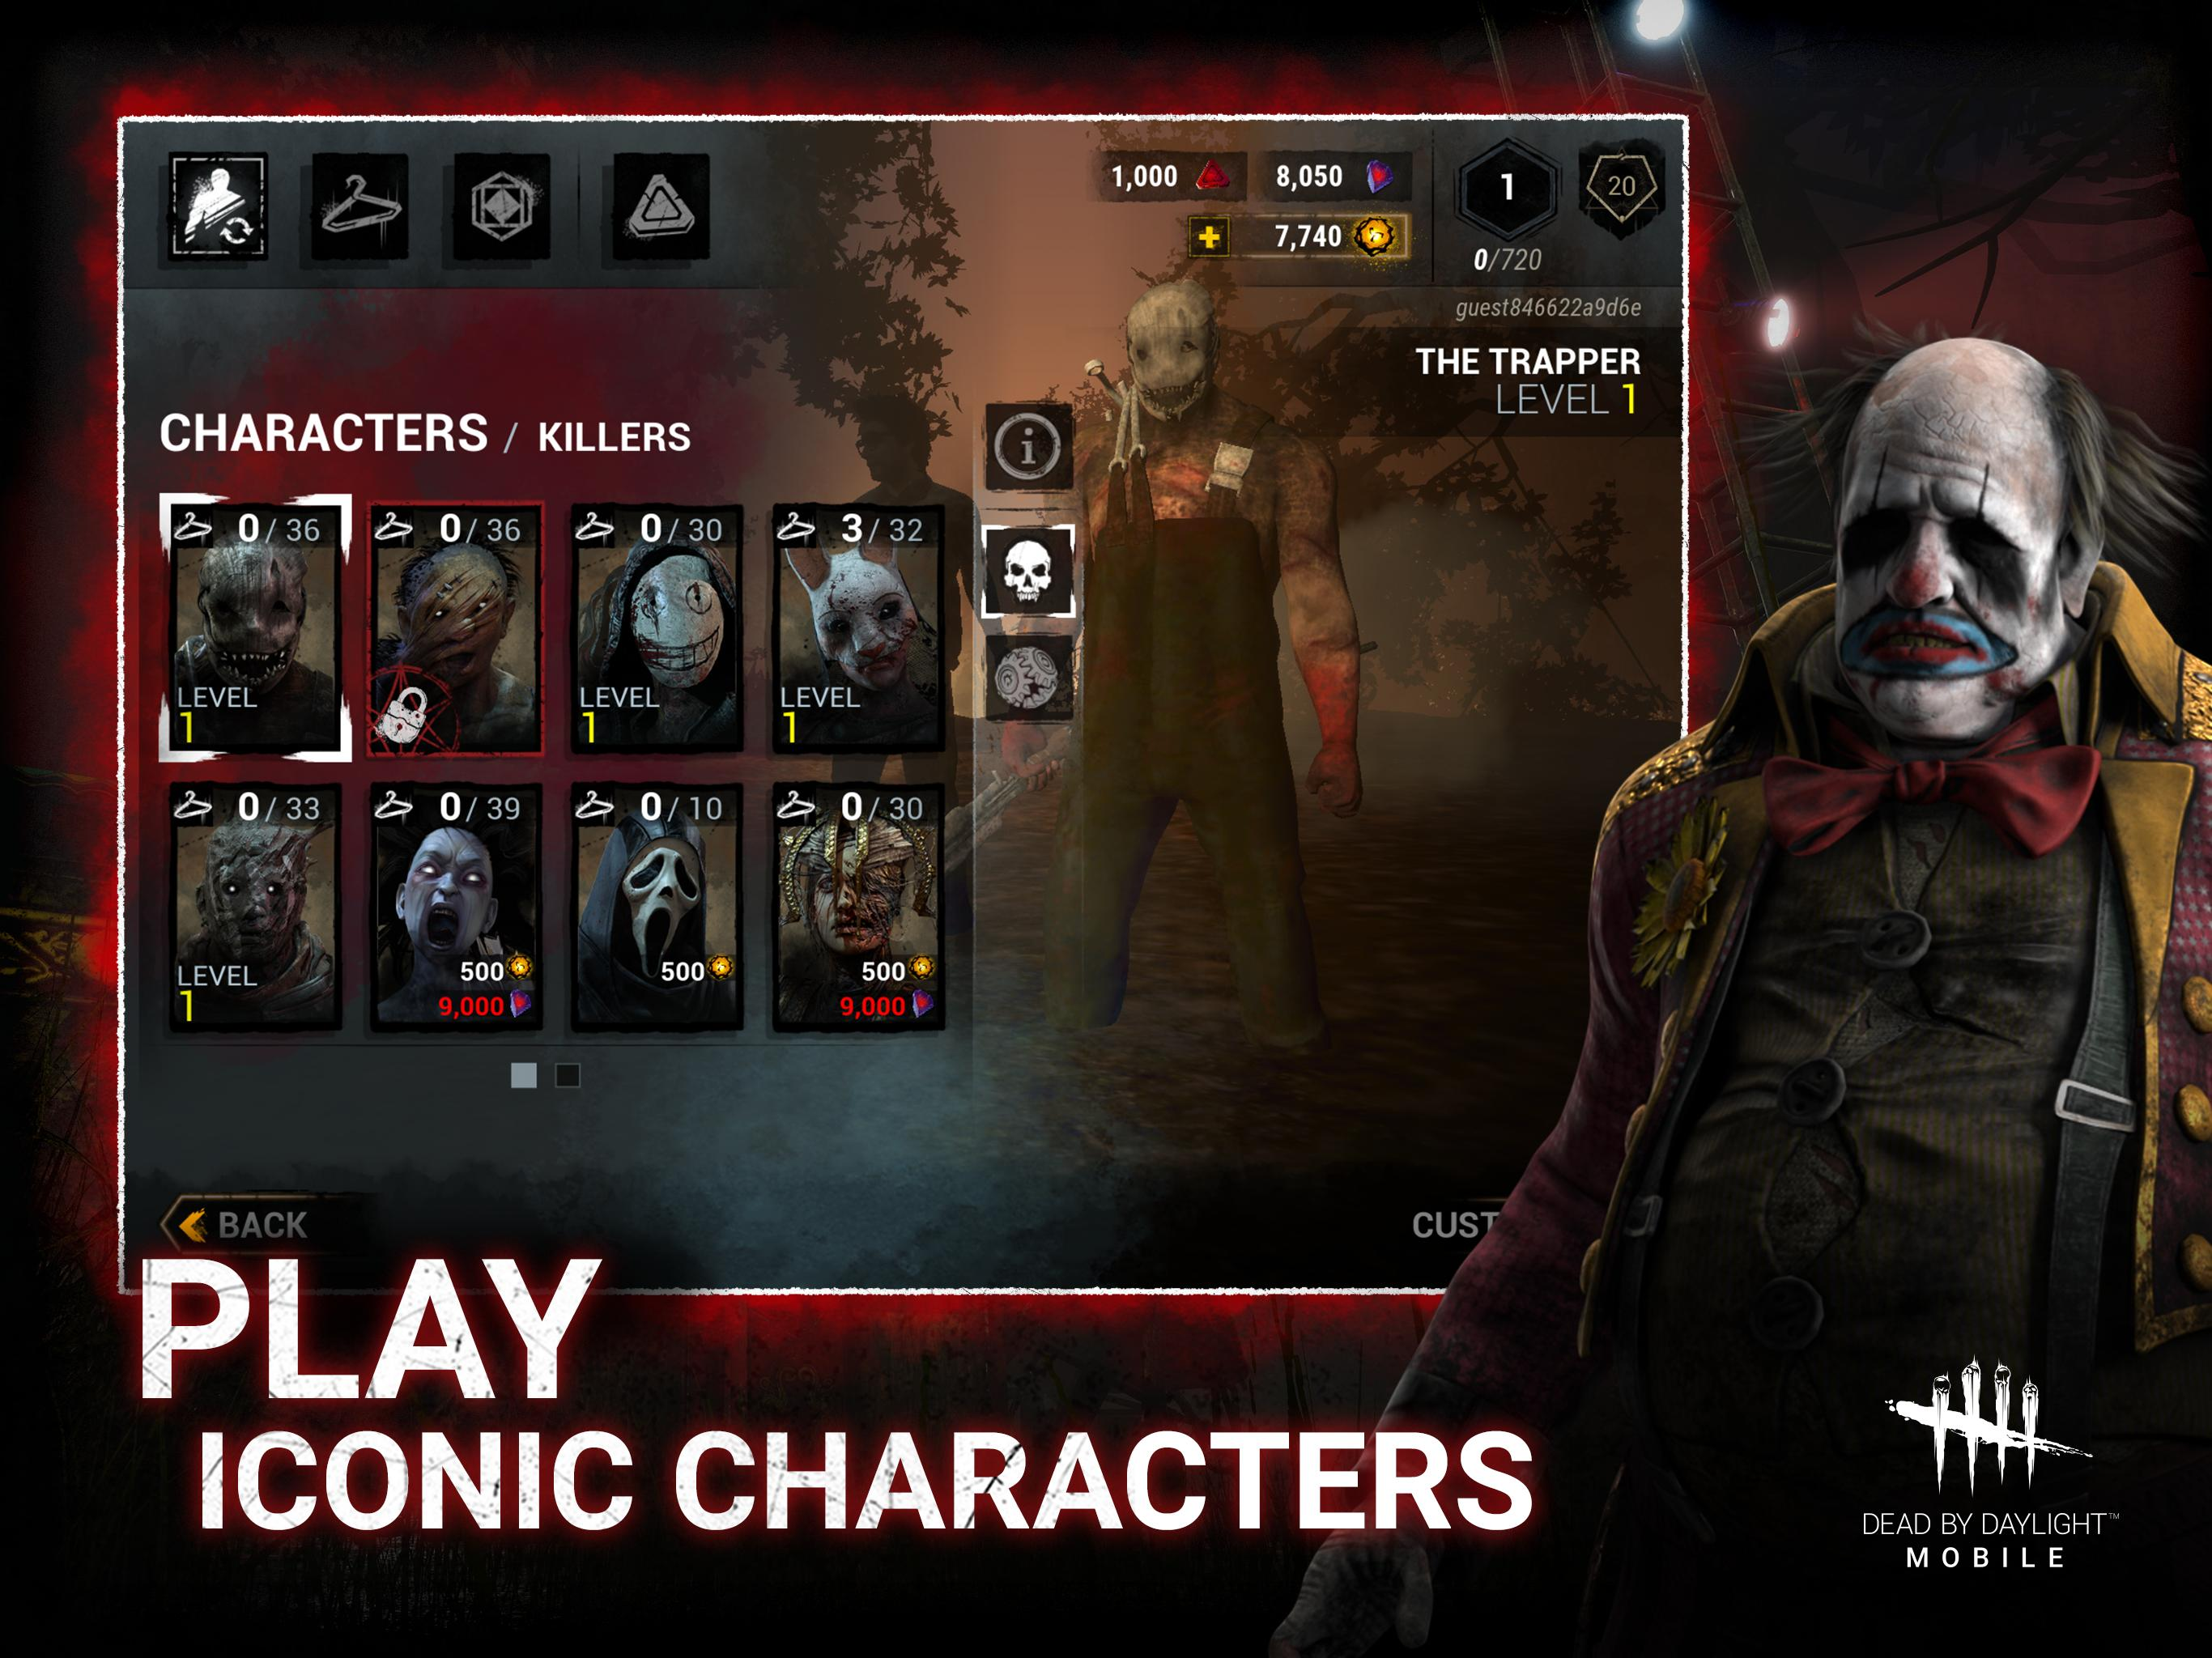 Roblox Games Dead By Daylight Dead By Daylight For Android Apk Download